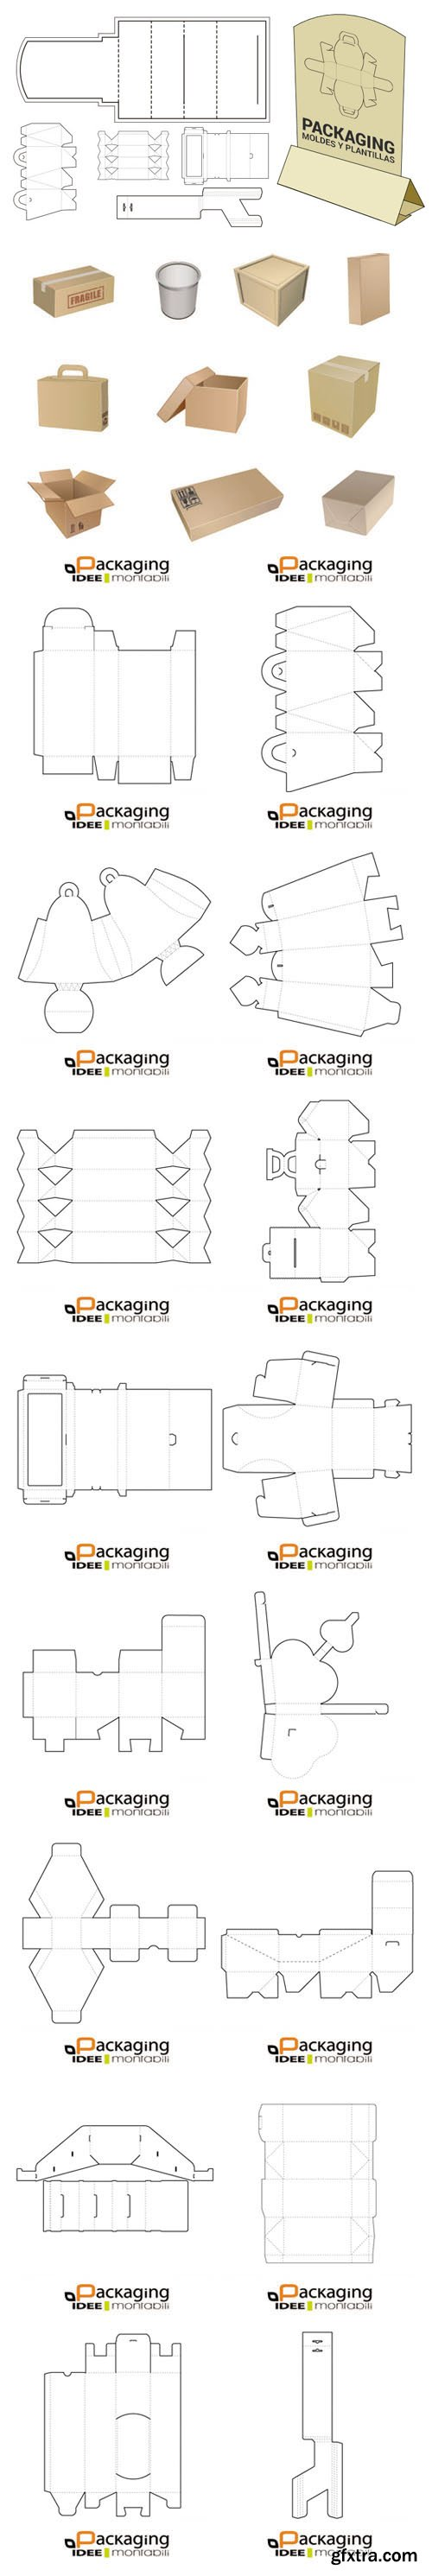 35 Packaging Molds and Templates in Vector